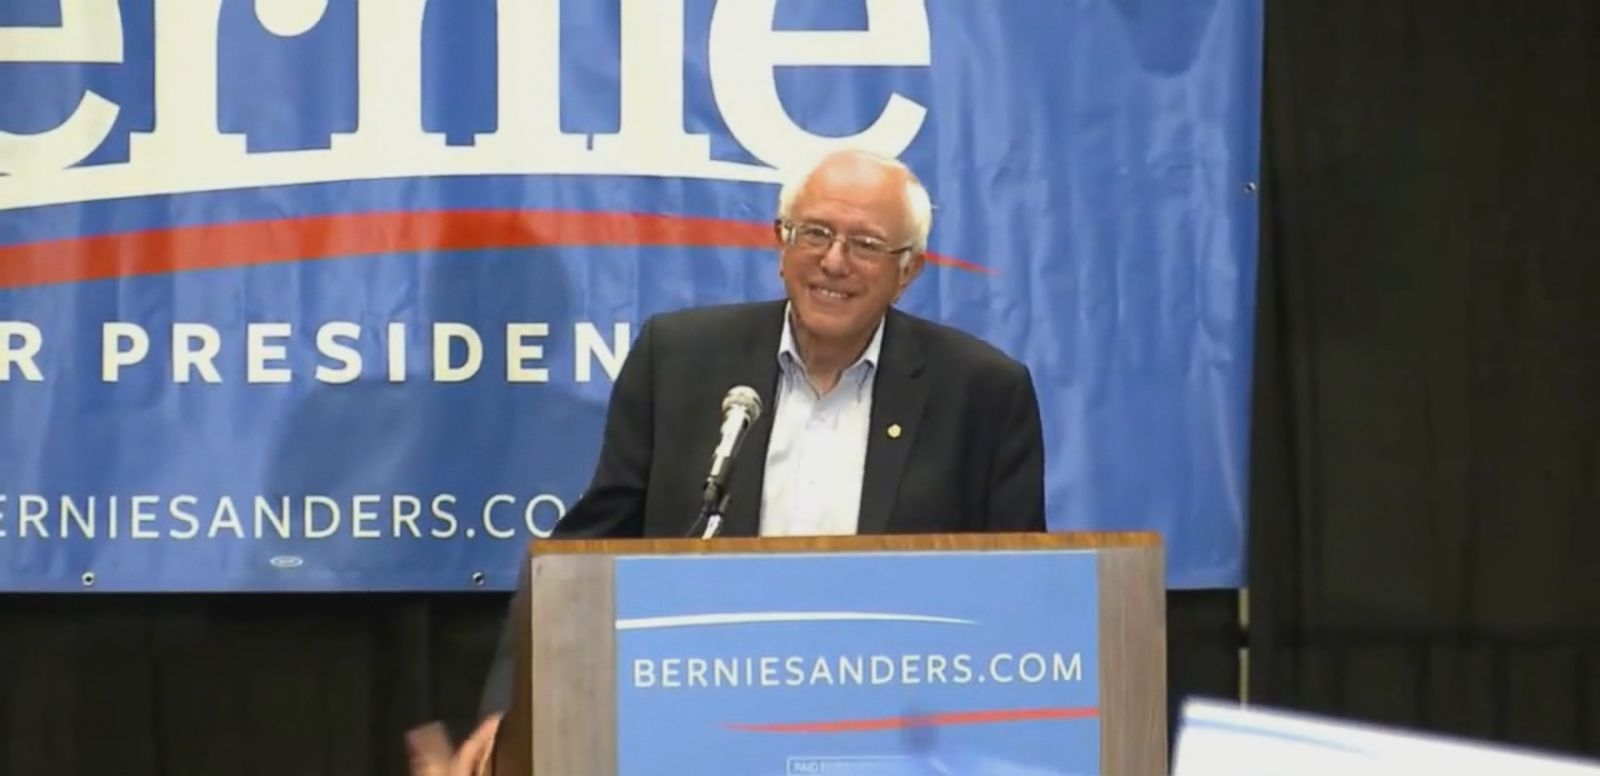 VIDEO: Bernie Sanders An Unlikely Source of Competition for Hillary Clinton